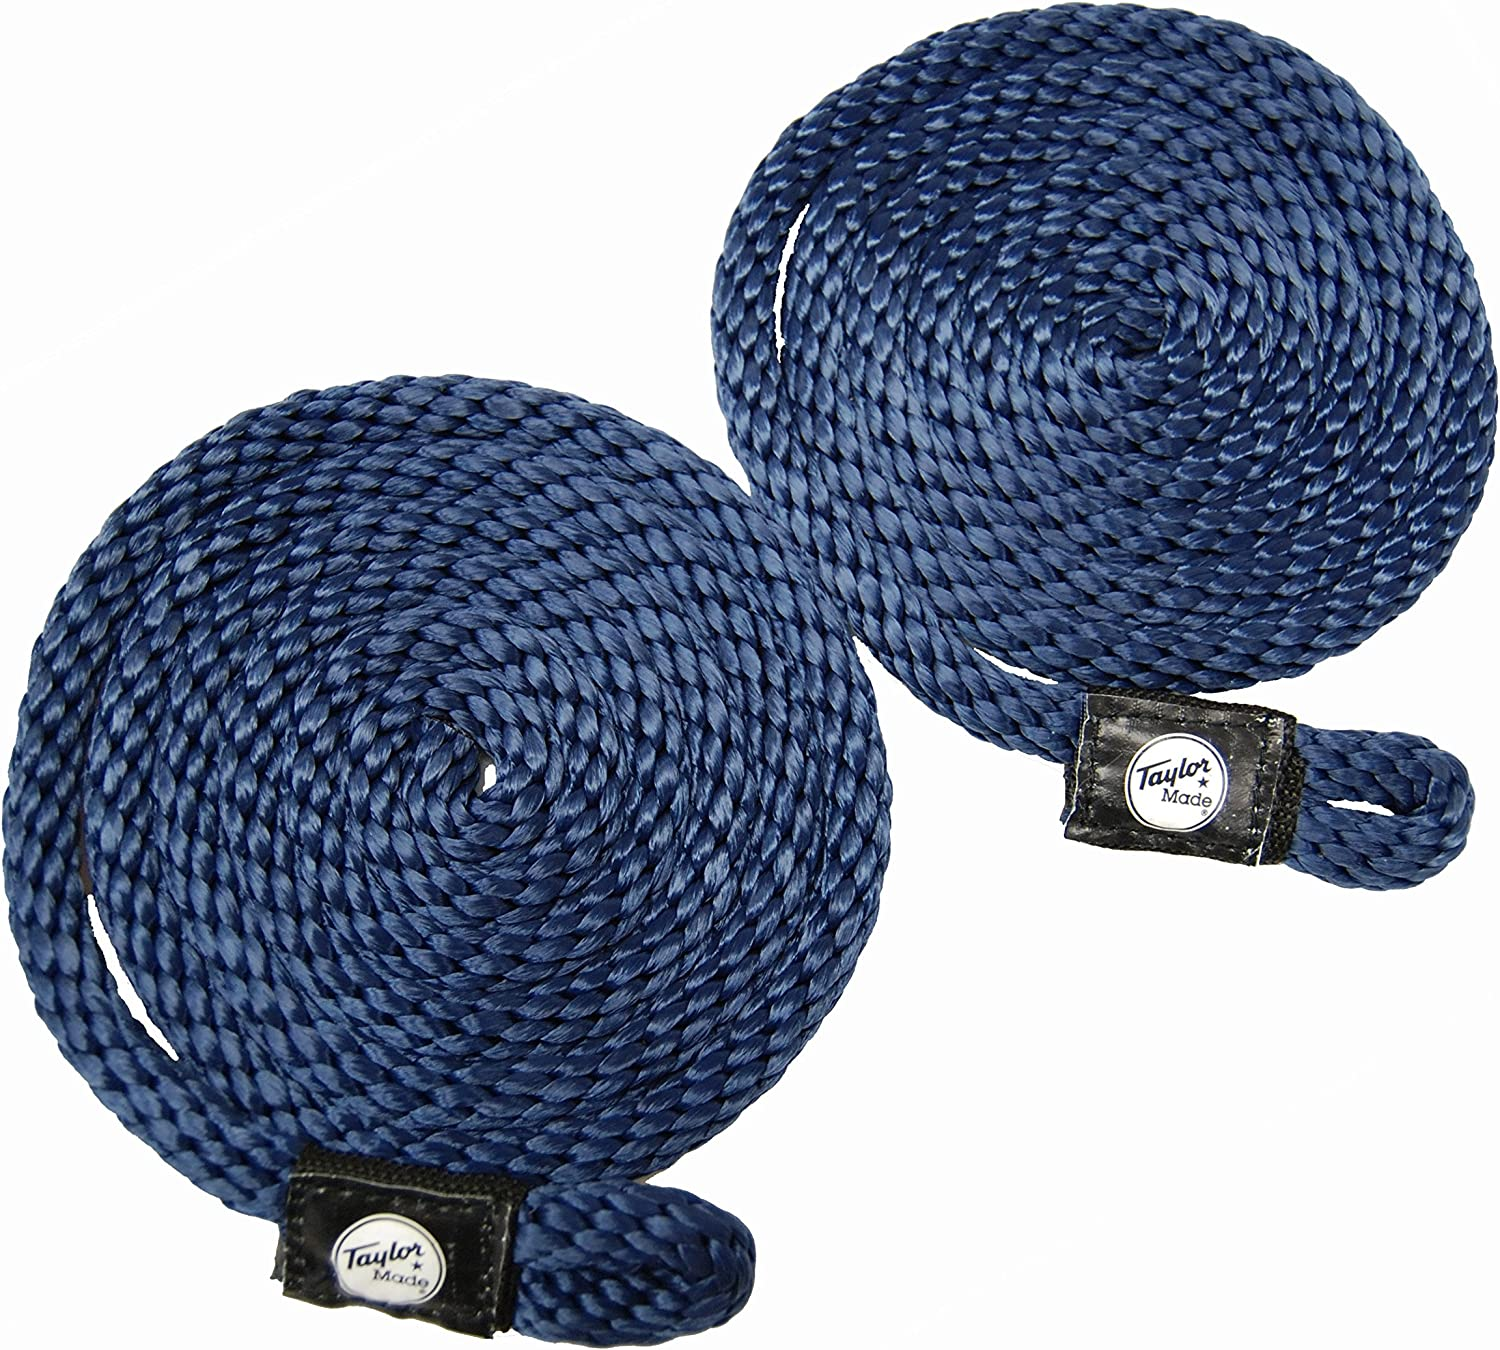 Braided Line with Loop 2 Pack 3//8 inch Diameter 6 Foot Length Fender Loc Taylor Made Products